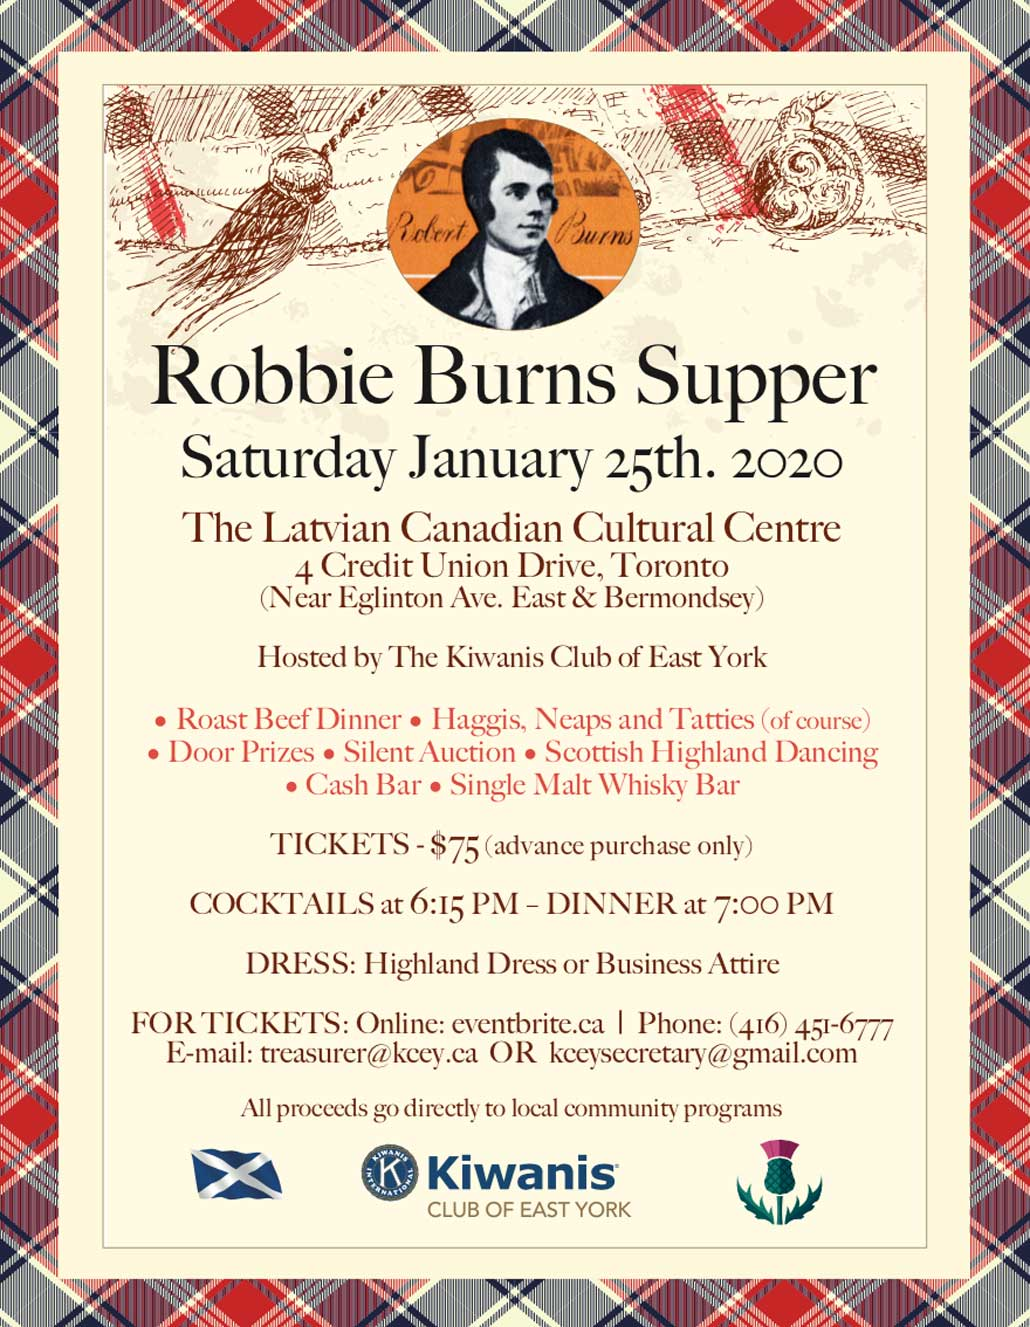 Robbie Burns Supper 2020